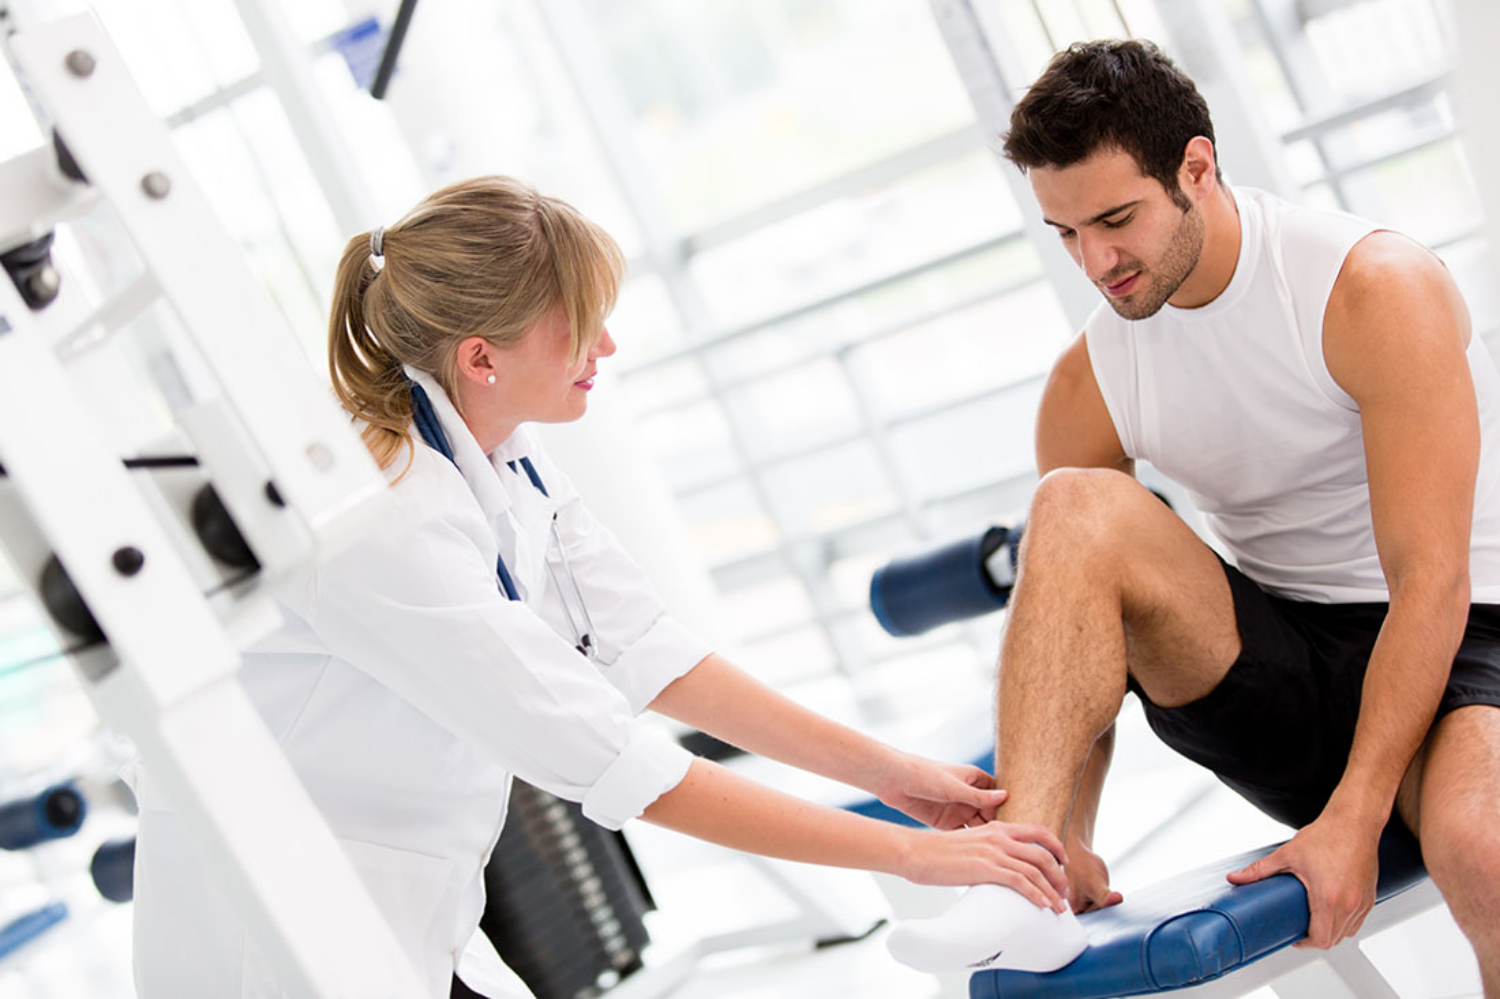 Male-getting-ankle-examined.jpg